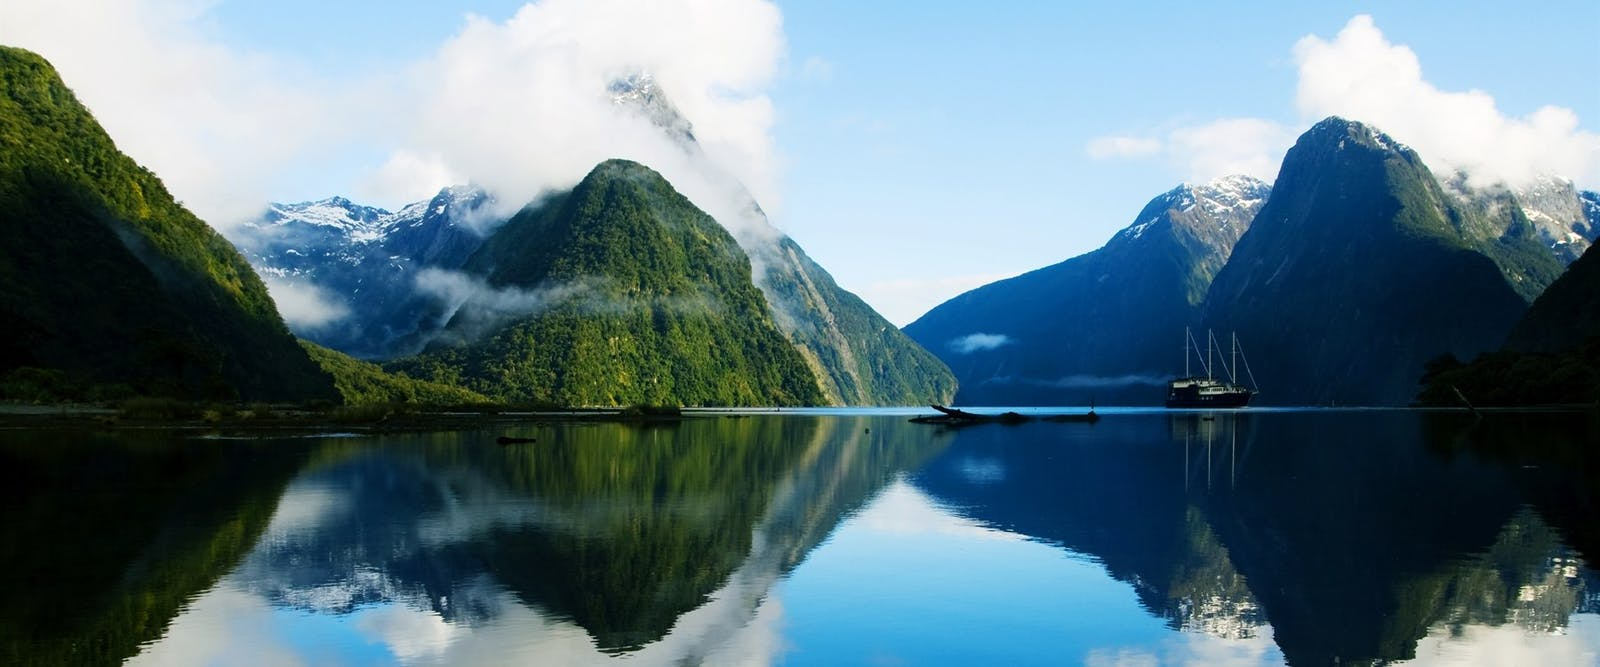 milford sound excursion 360 miles